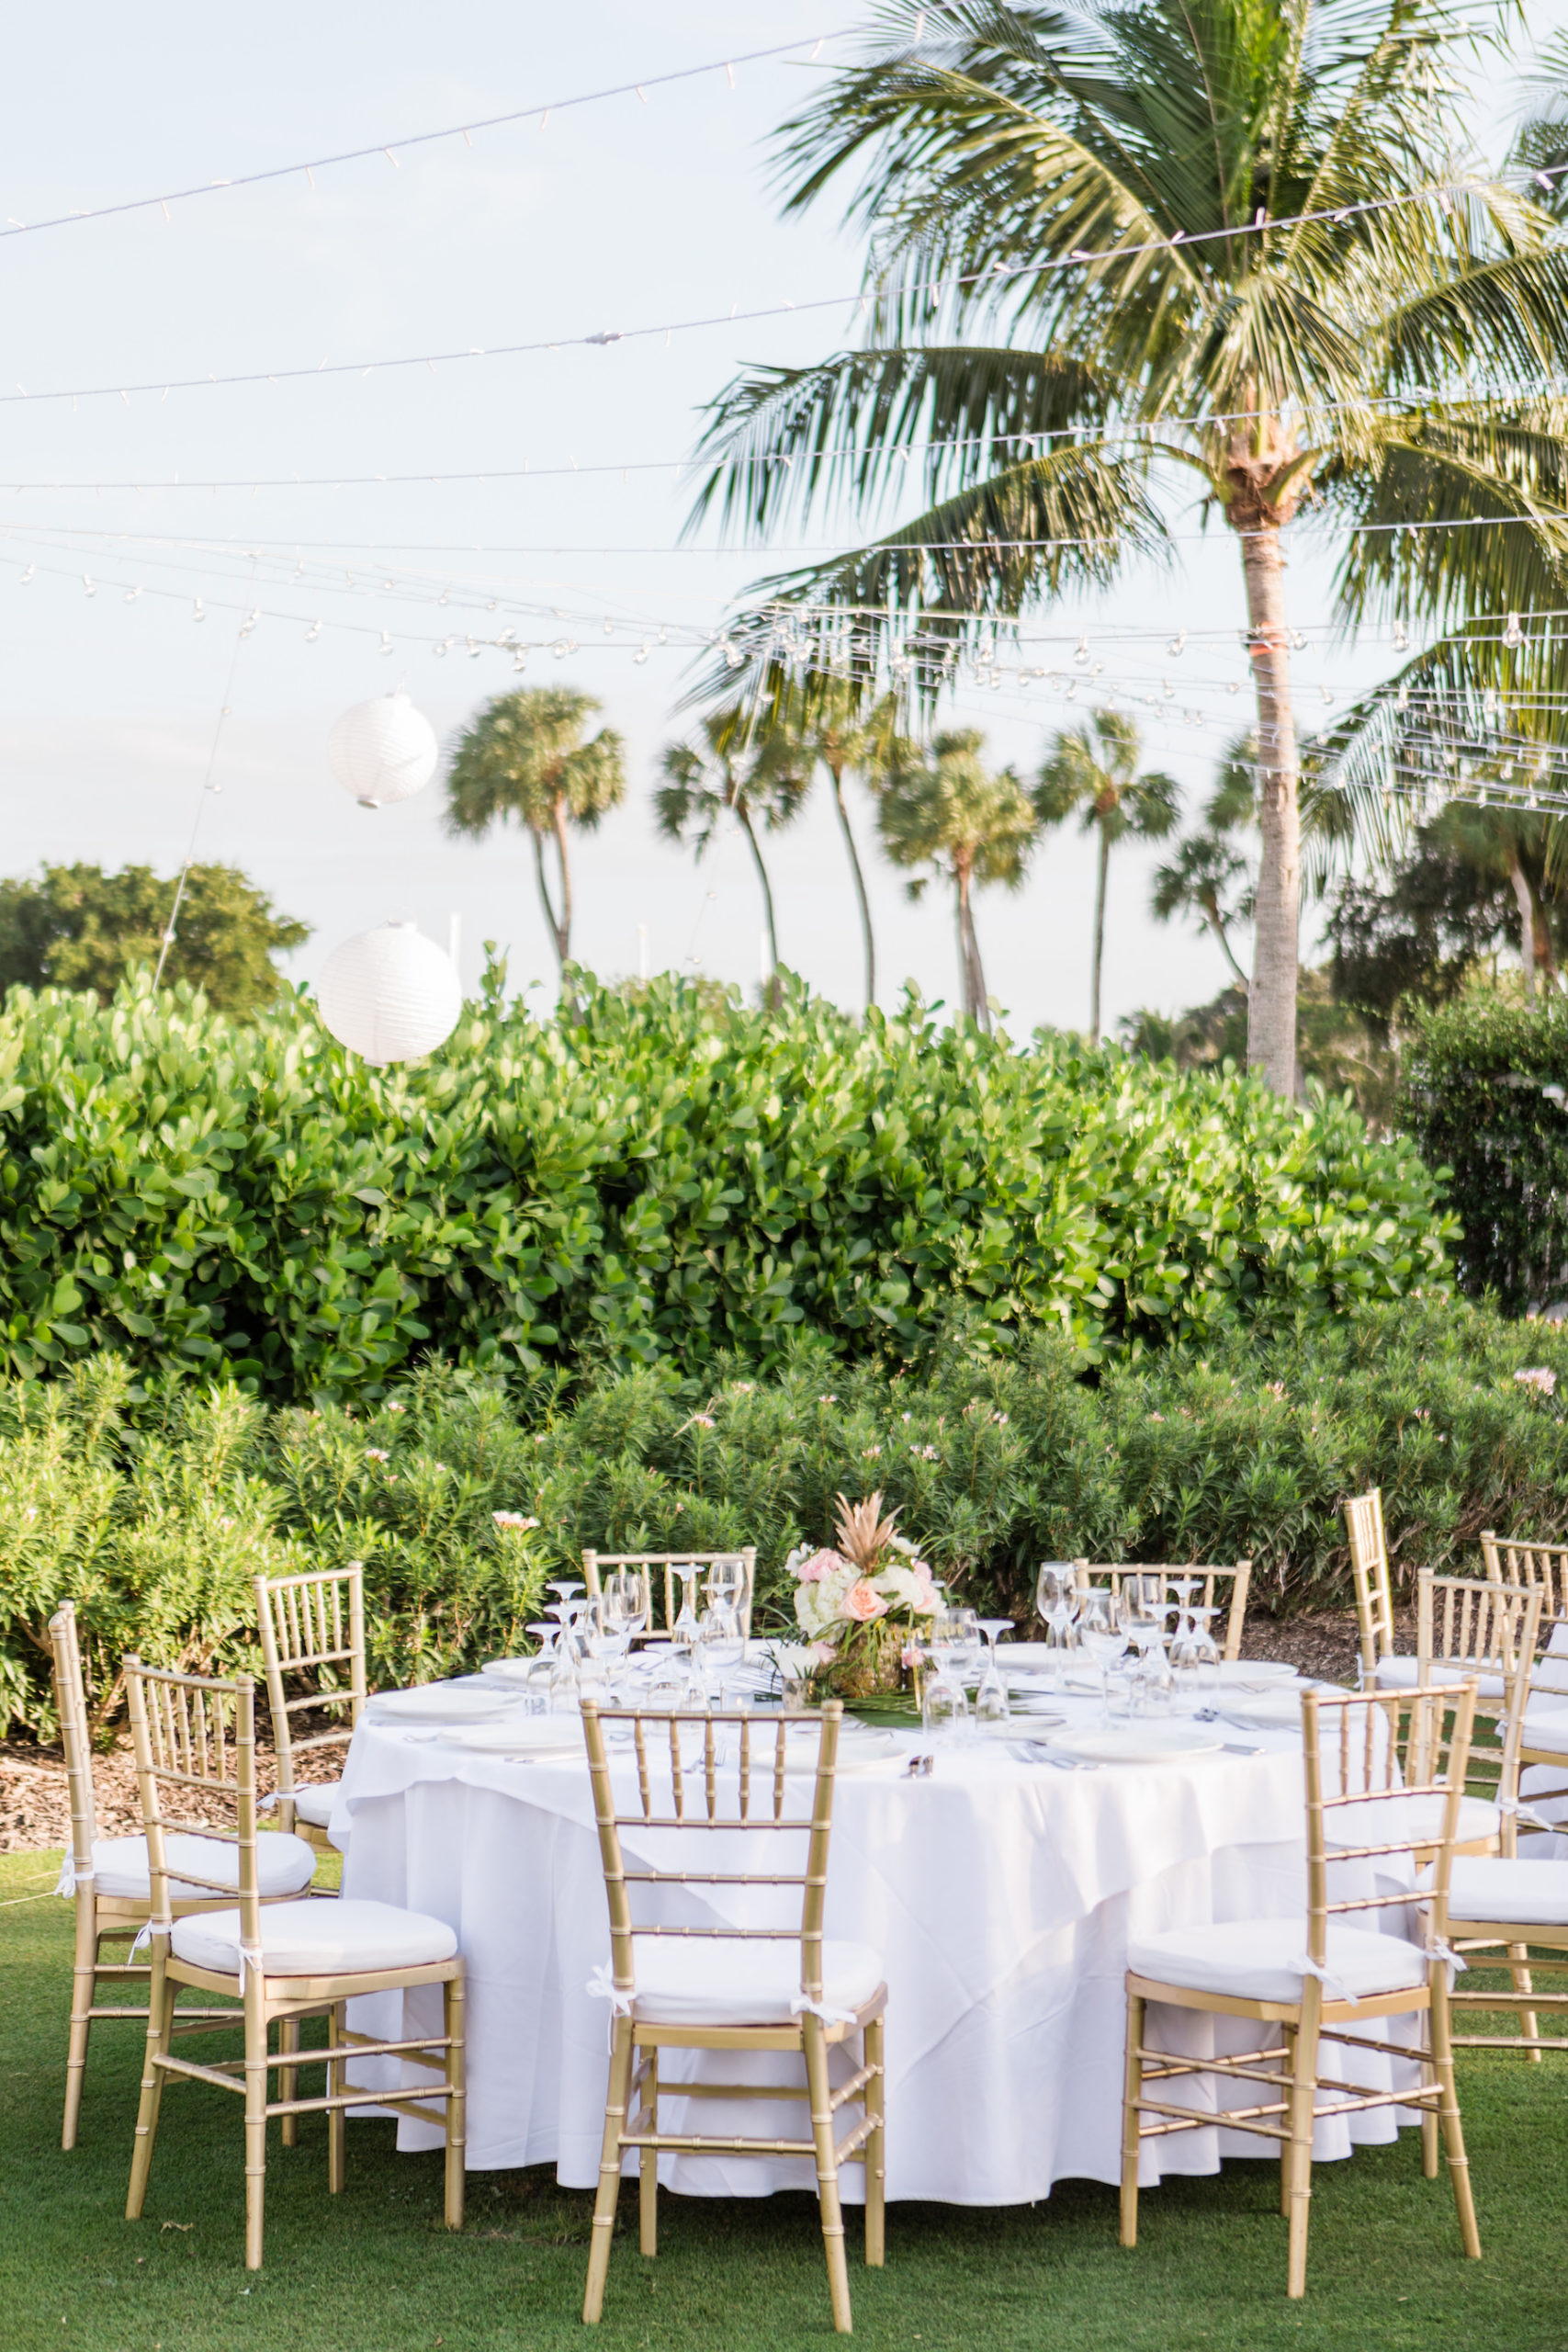 Tropical Outdoor Florida Lawn Wedding Reception with Hanging White Lanterns, White Linens and Gold Chiavari Chairs | Sarasota Wedding Venue The Resort at Longboat Key Club